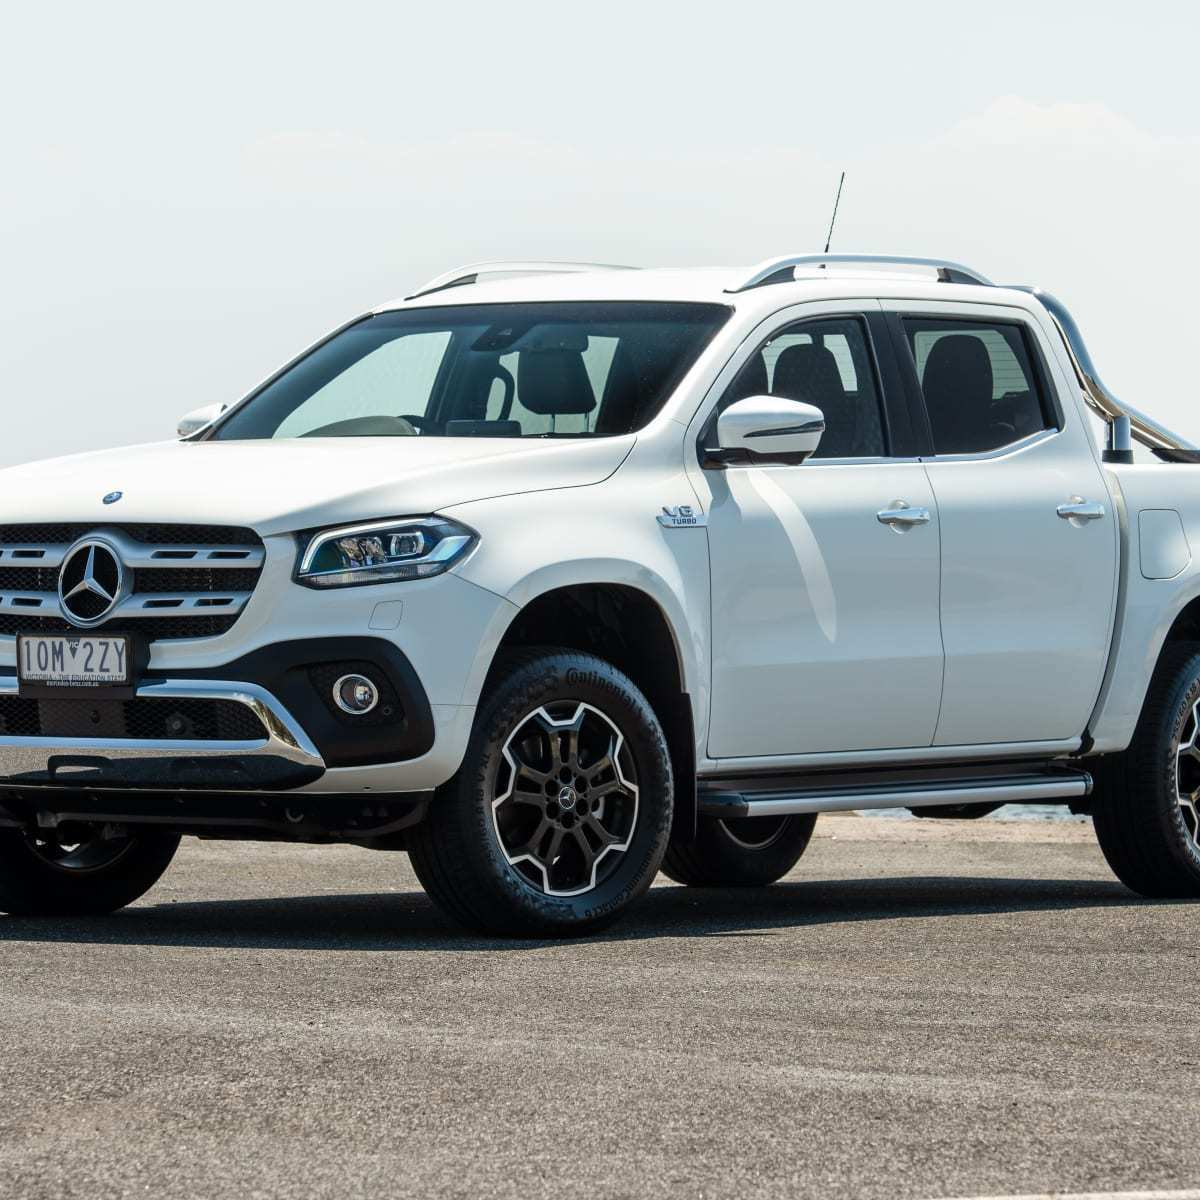 71 All New 2019 Mercedes X Class Model